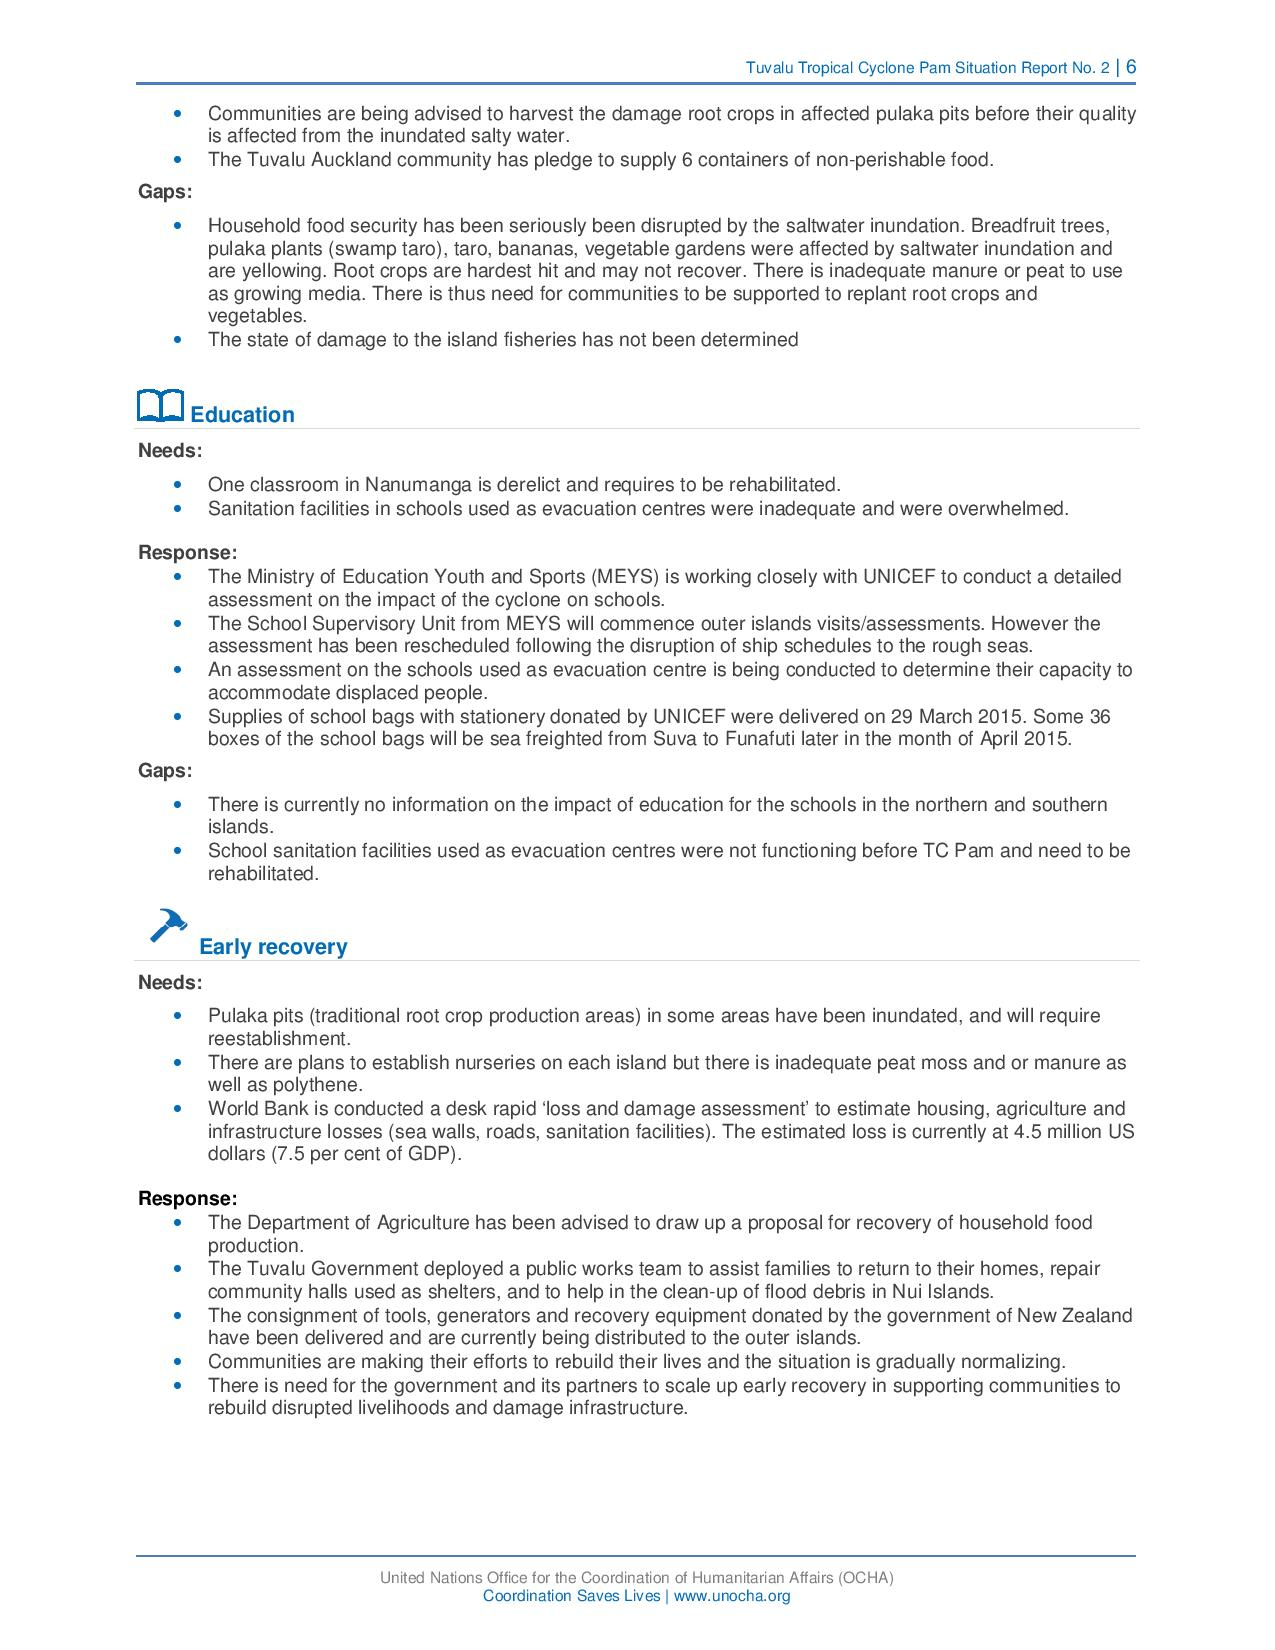 reliefweb.int_sites_reliefweb.int_files_resources_Tuvalu Tropical Cyclone Pam Situation Report No. 3-page-006.jpg